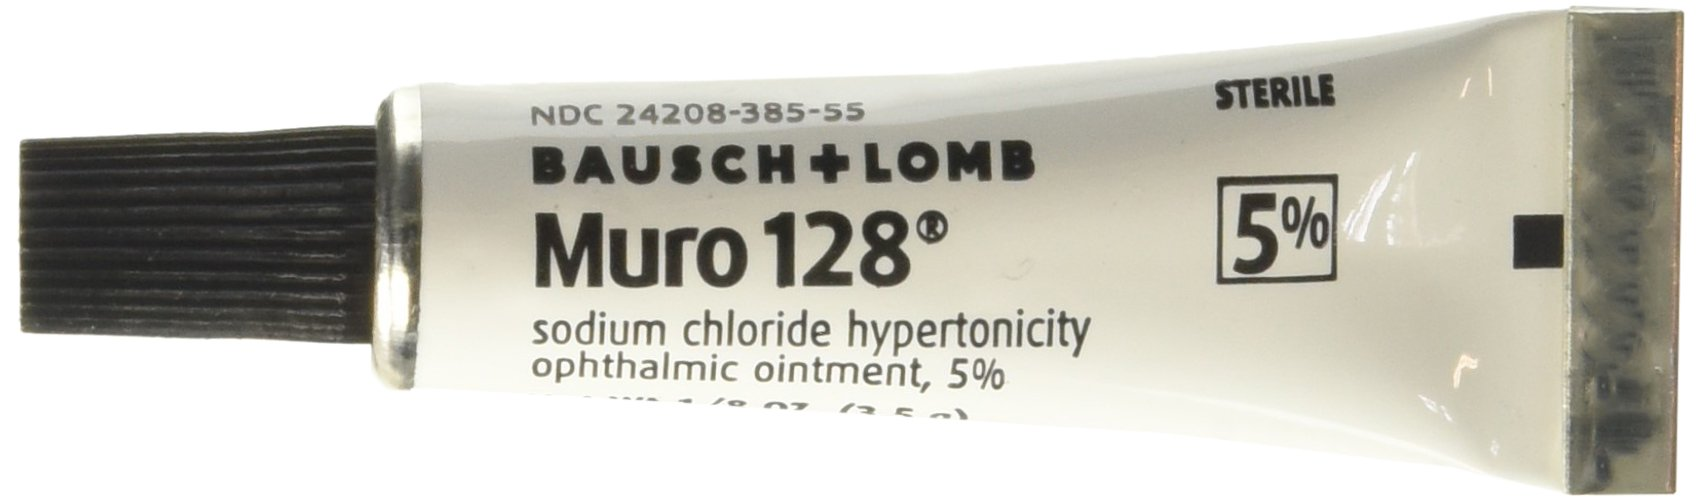 Muro 128 Sterile Ophthalmic 5 Percent Ointment,Twin Pack .25 oz (7 g